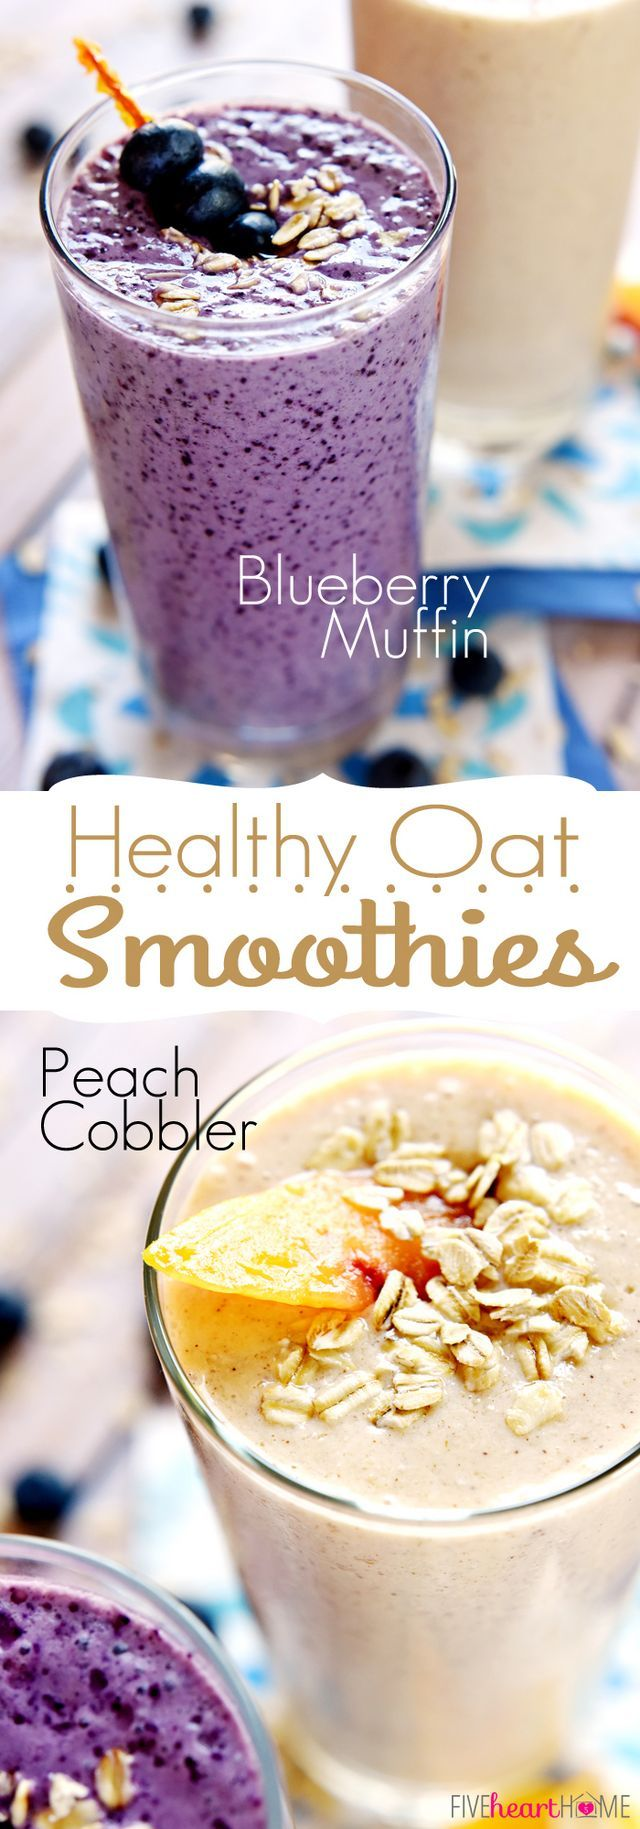 Ground oats, yogurt, and frozen fruit lend these wholesome, filling Healthy Oat Smoothies a thick, creamy texture, while pure vanilla extract and a touch of cinnamon make them taste just like blueberr